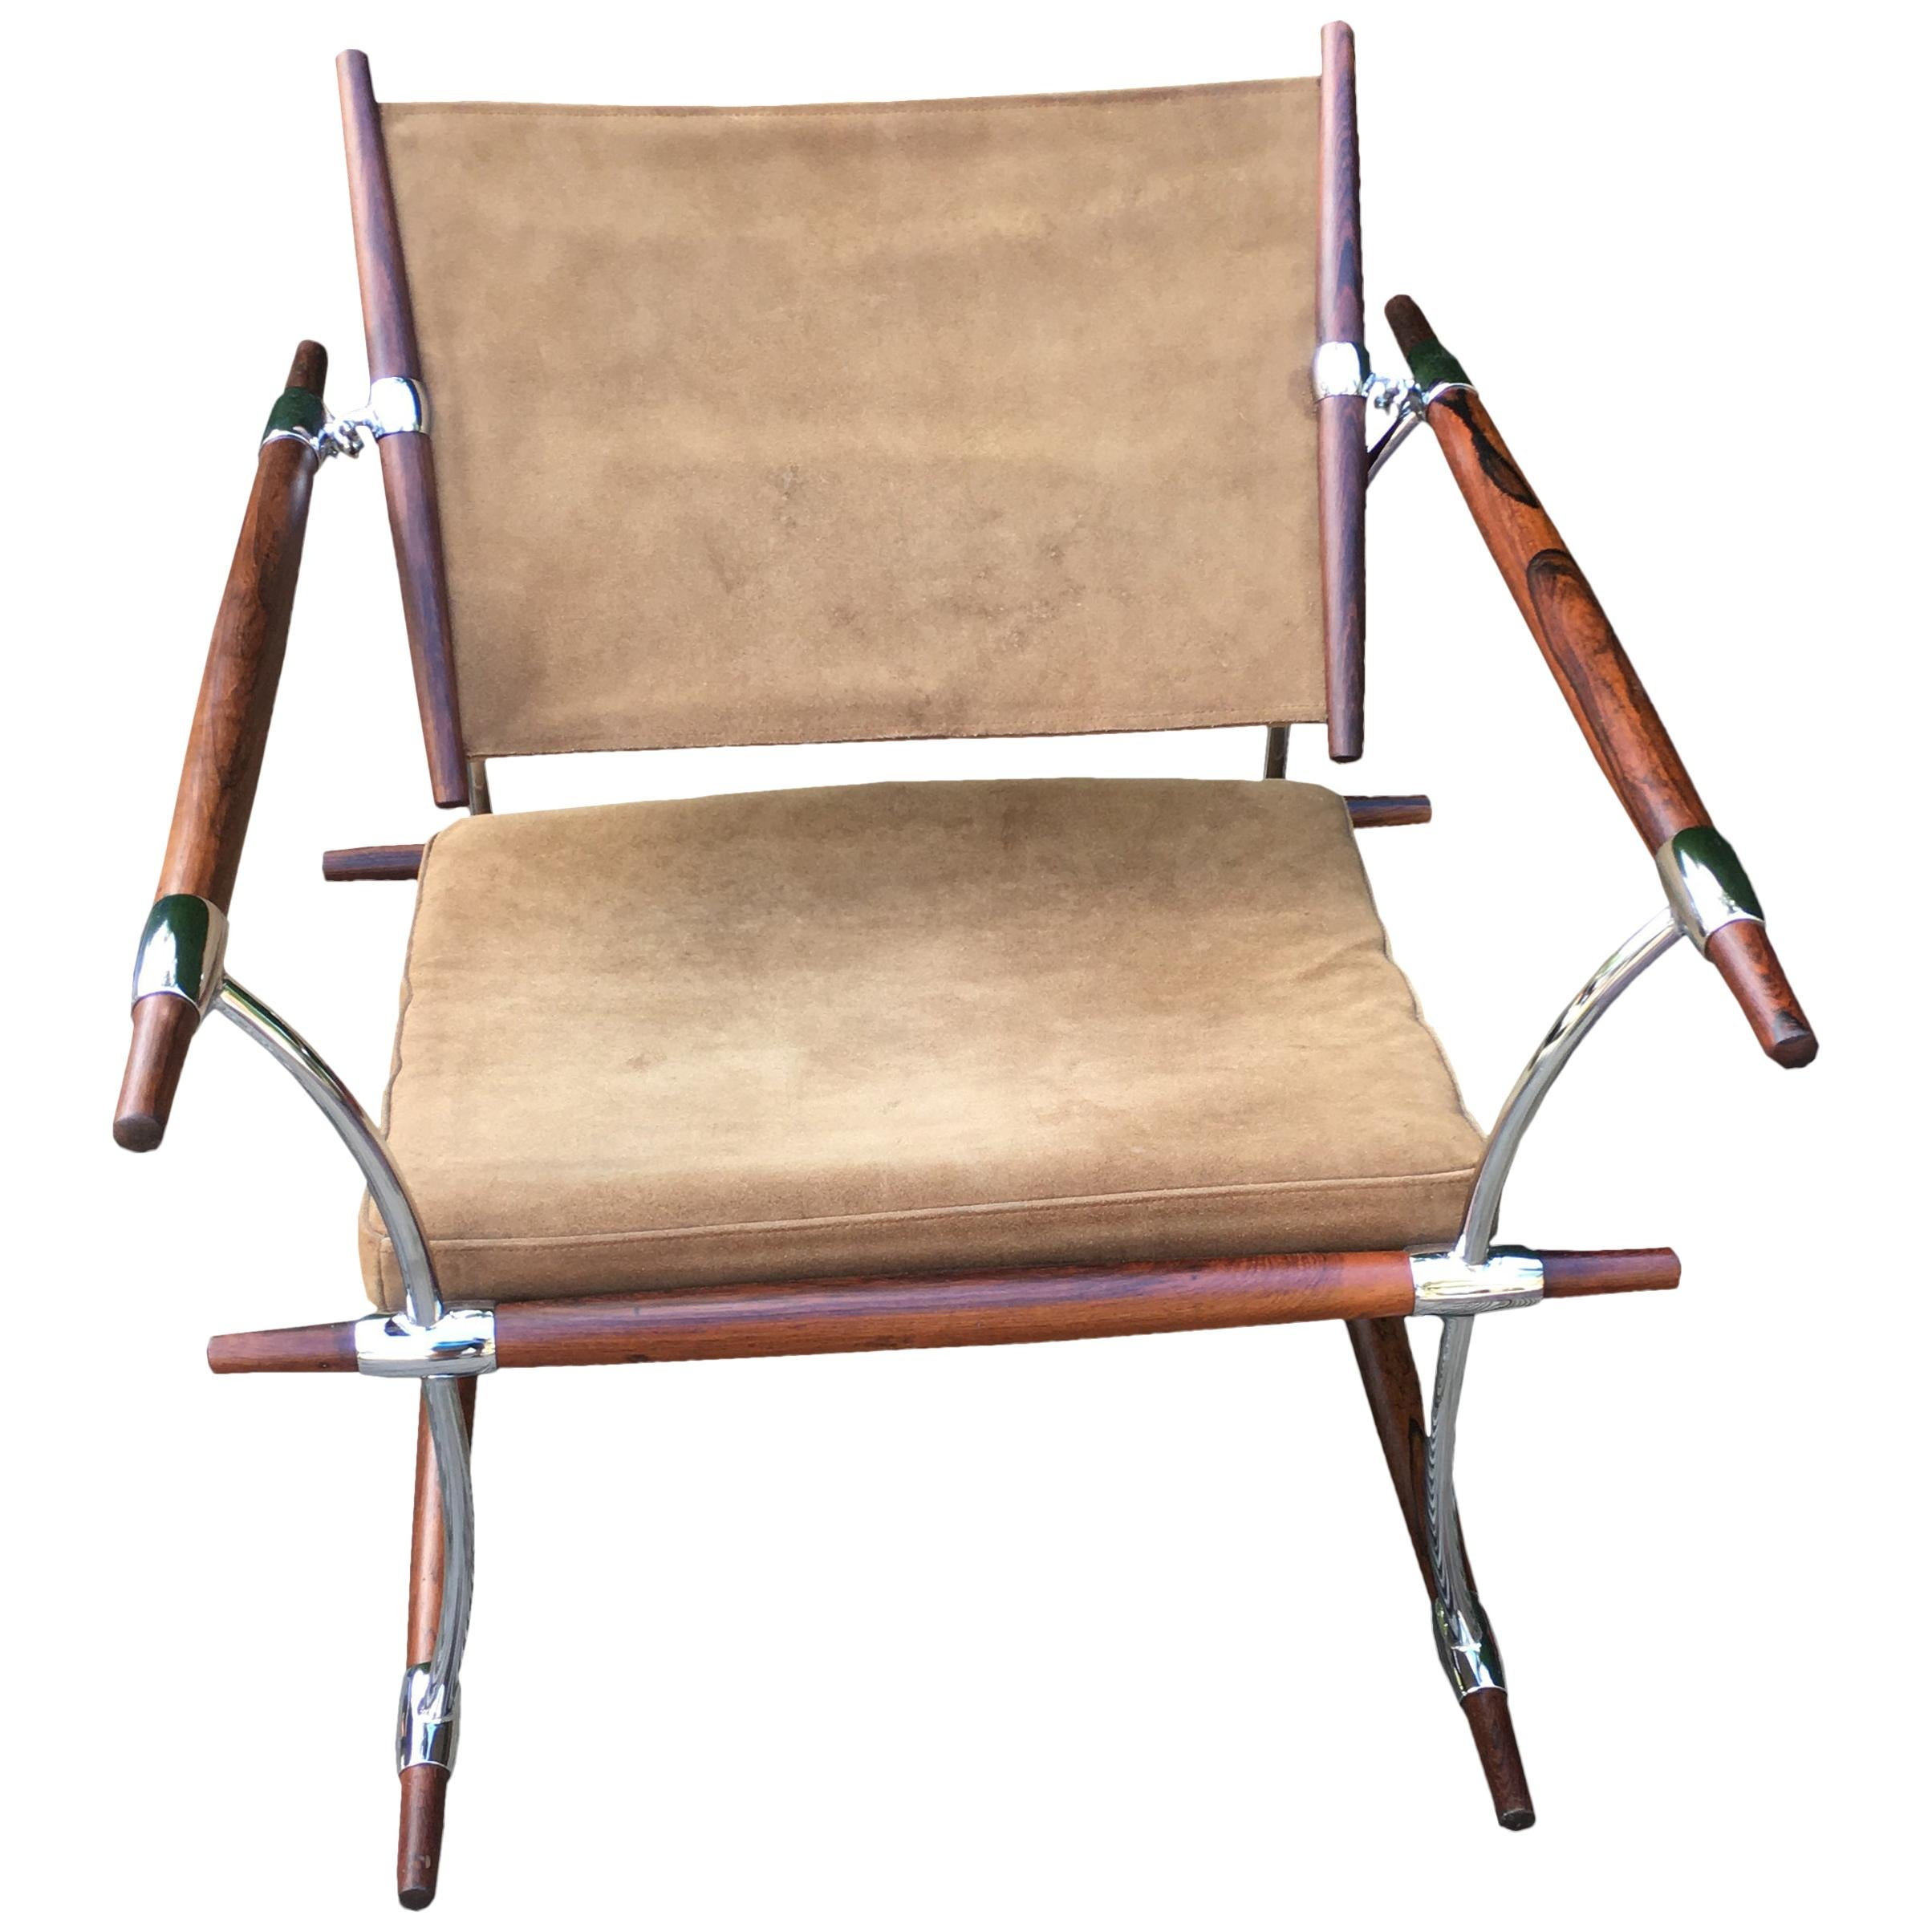 Solid Rosewood and Chrome 'Stick' Chair by Jens Quistgaard for Nissen Langea